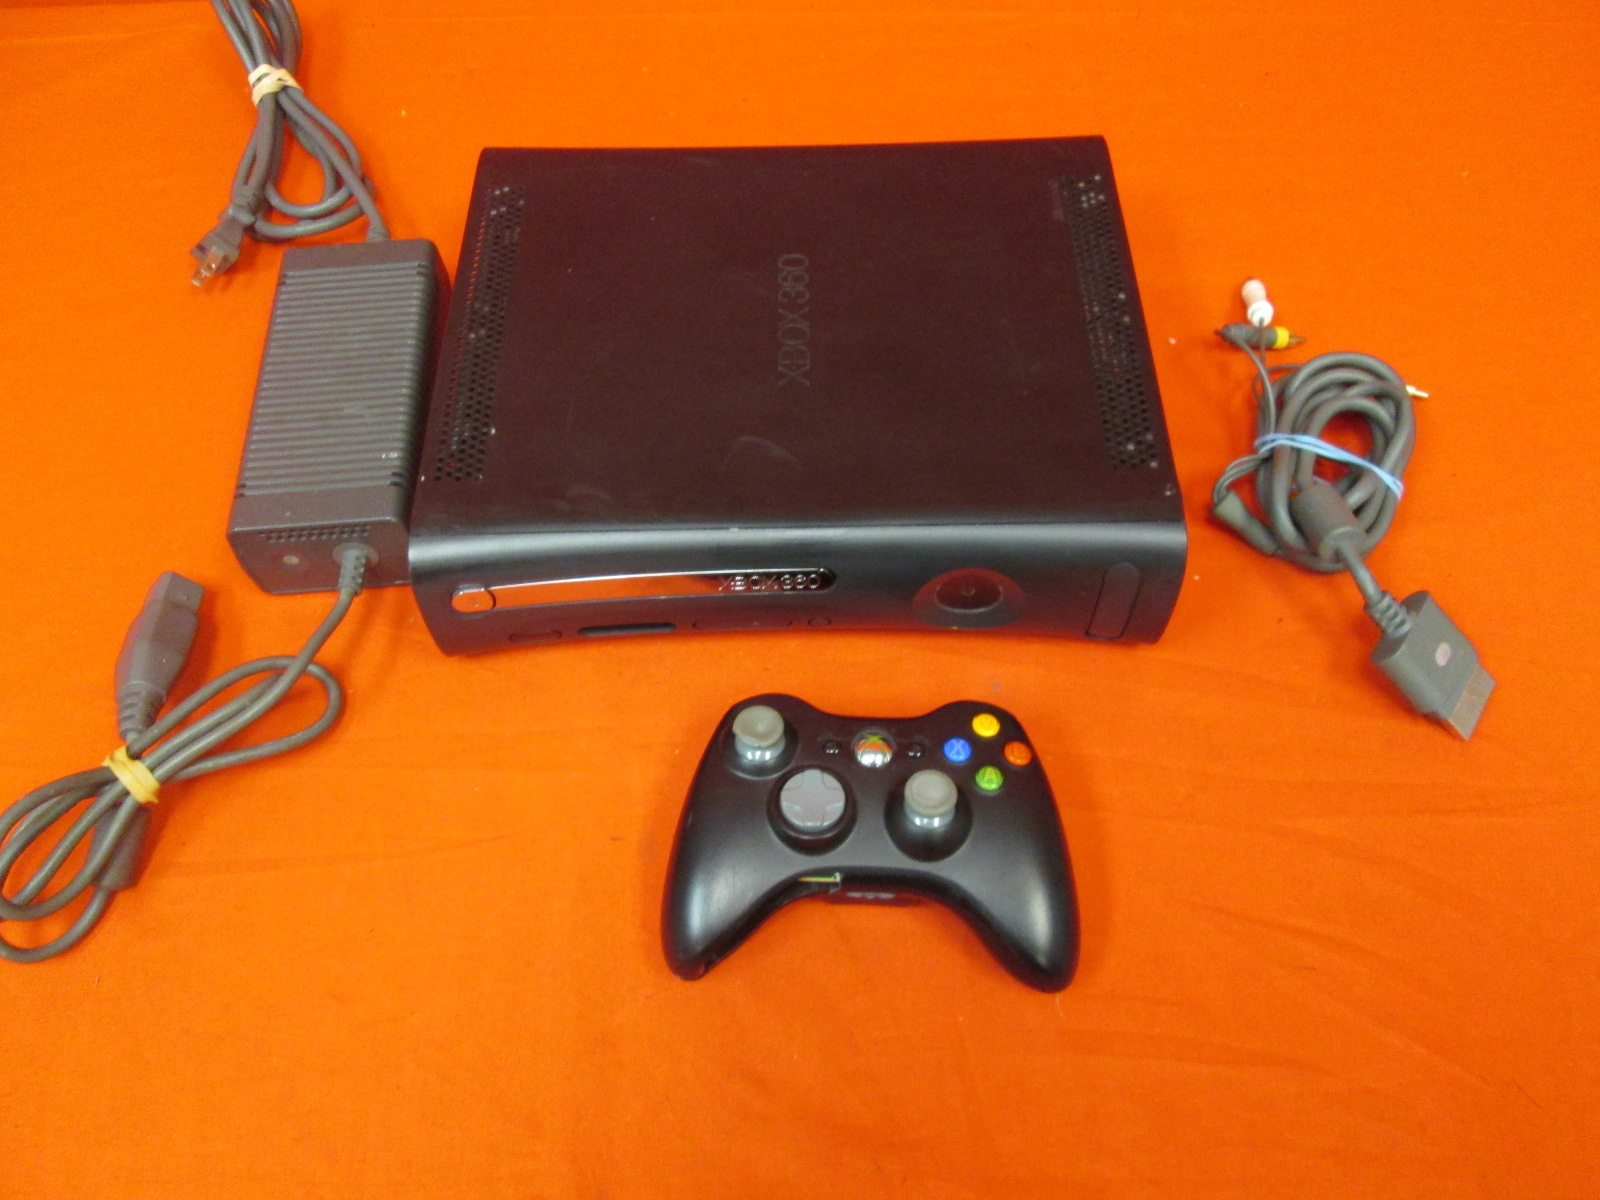 Microsoft Xbox 360 Video Game System Console With Controller Black